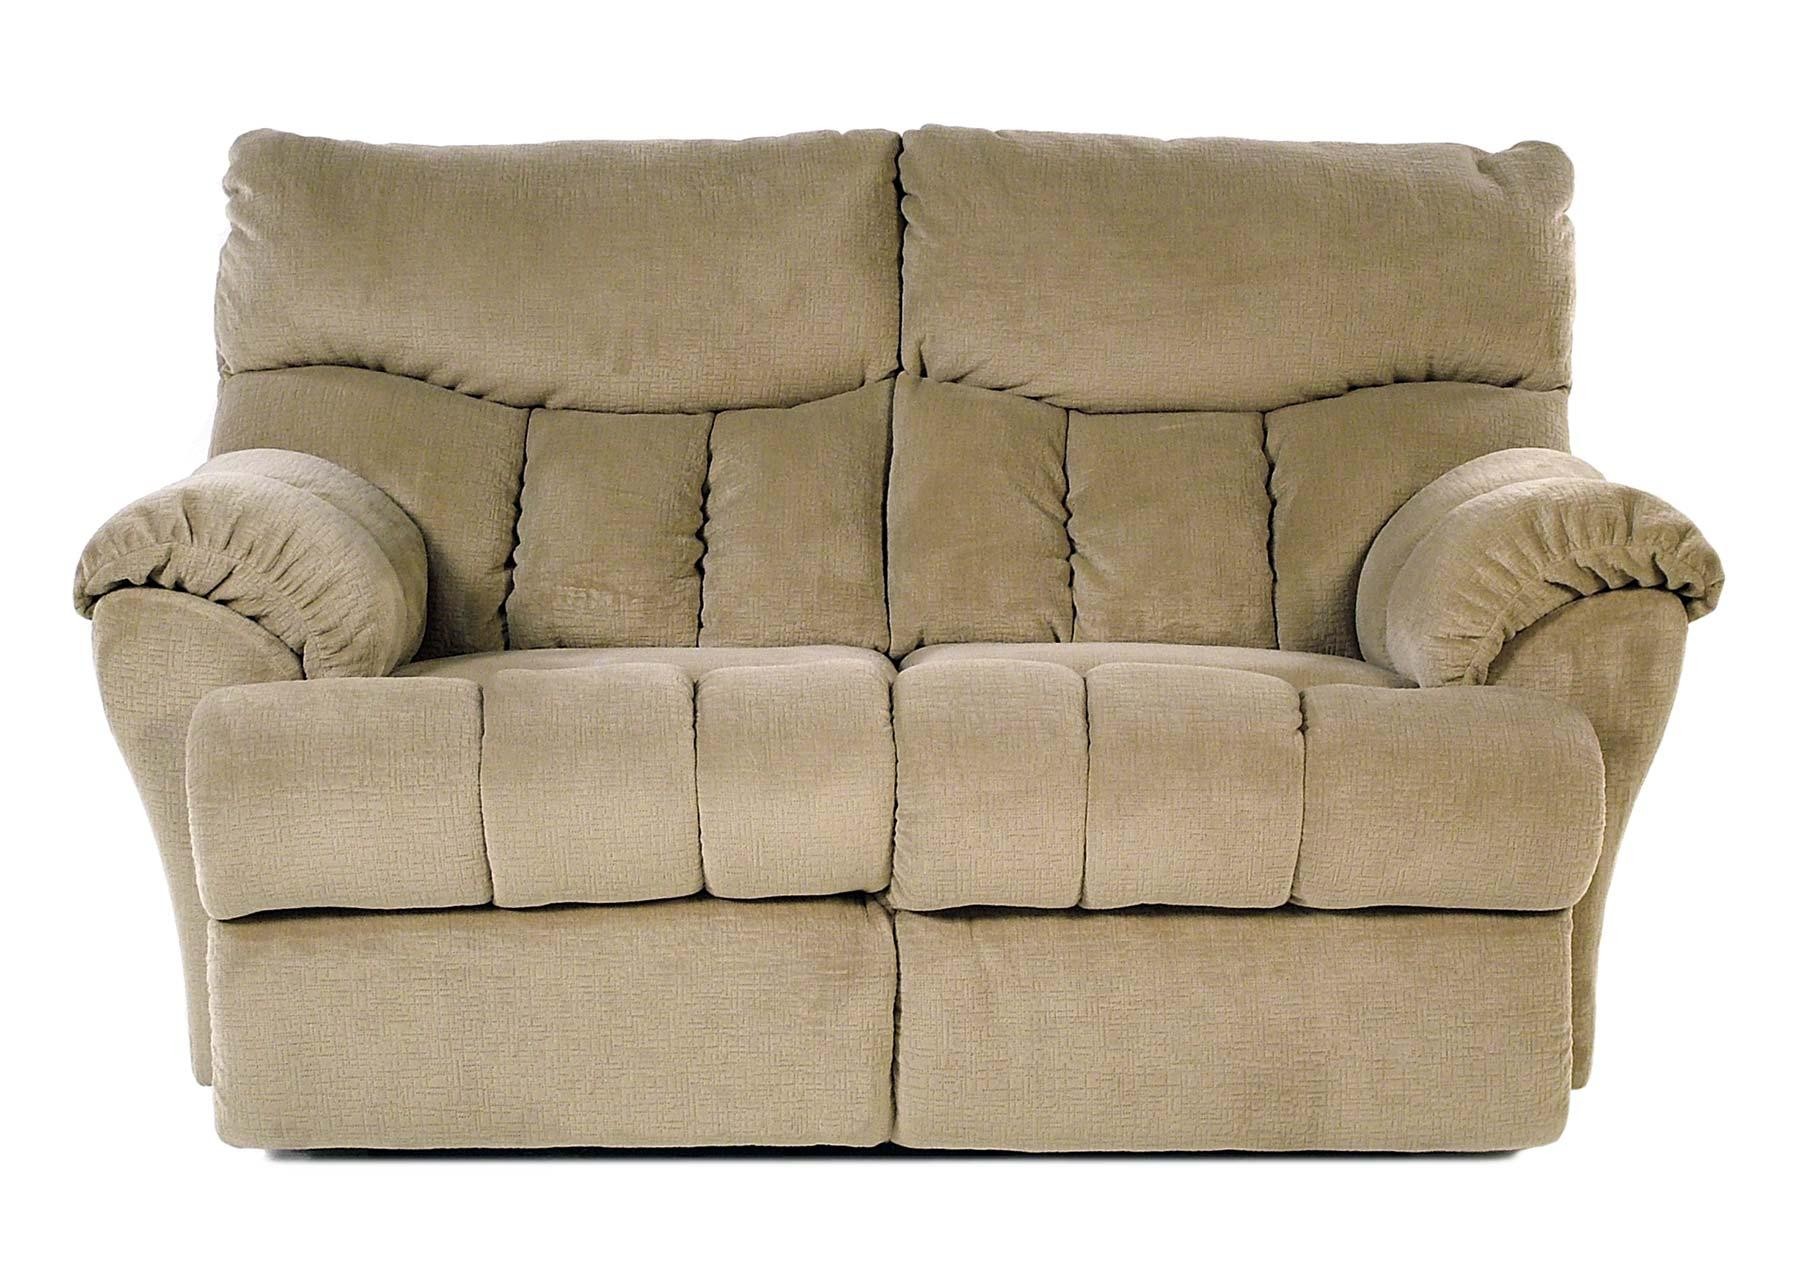 Design To Recline Full Relaxer Lay Flat Reclining Loveseat